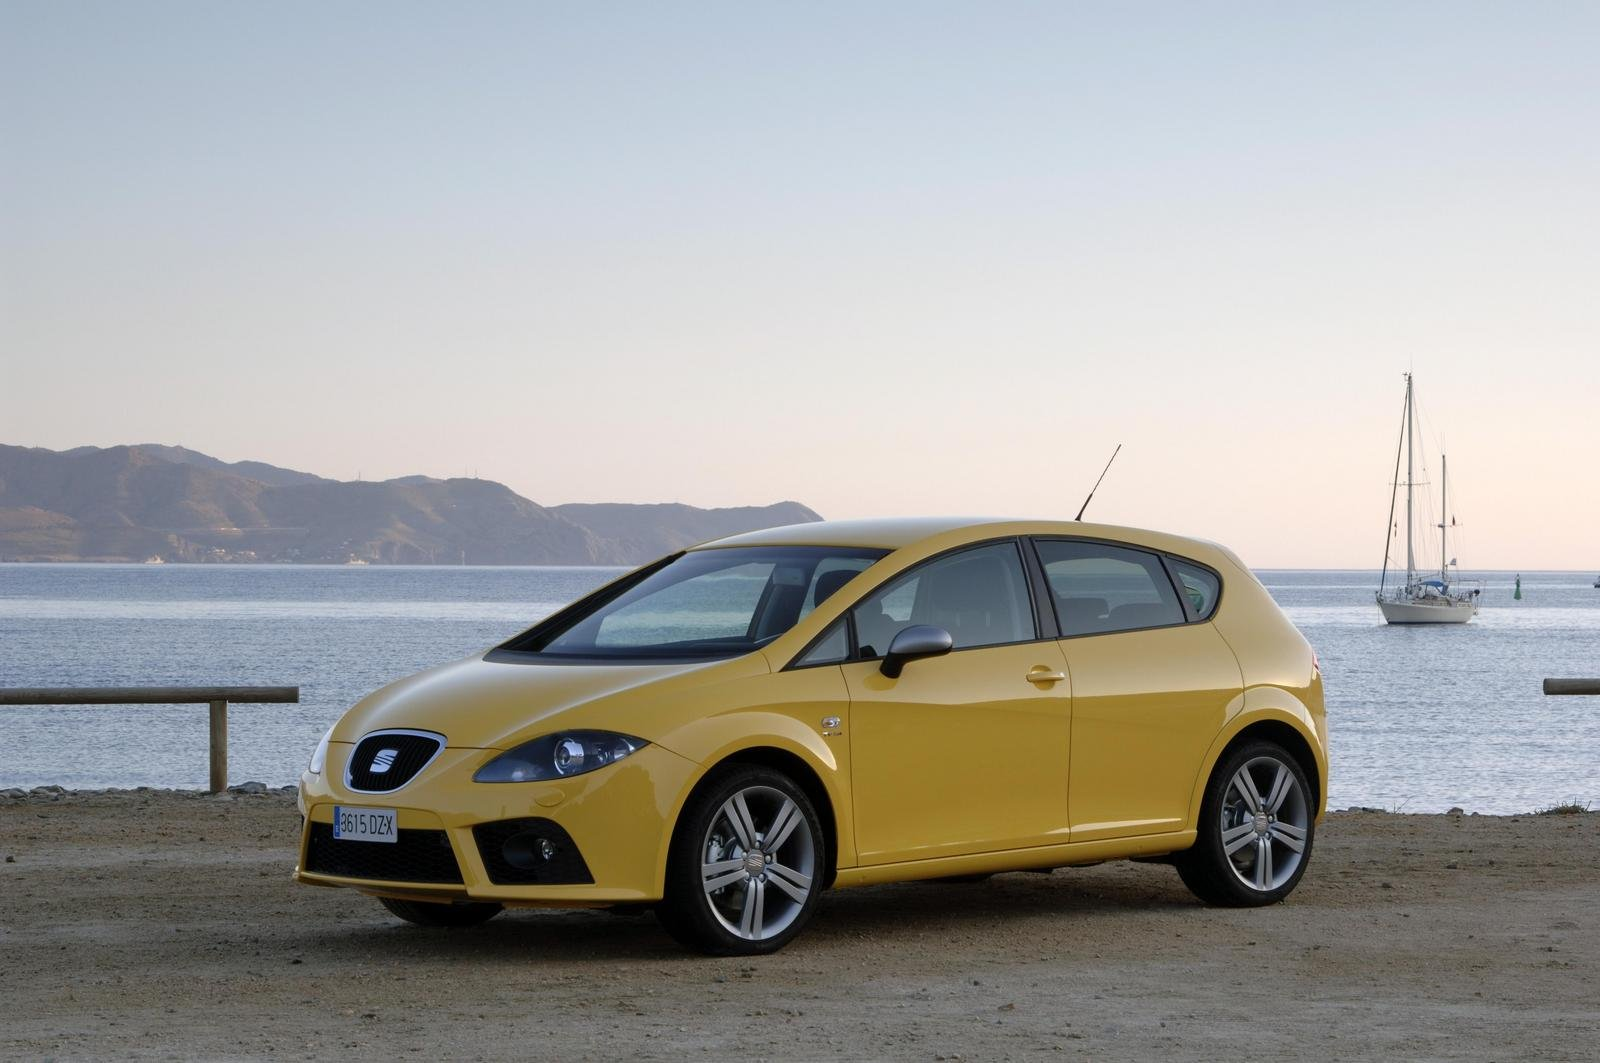 2007 seat leon fr 2 0 tfsi picture 111703 car review top speed. Black Bedroom Furniture Sets. Home Design Ideas